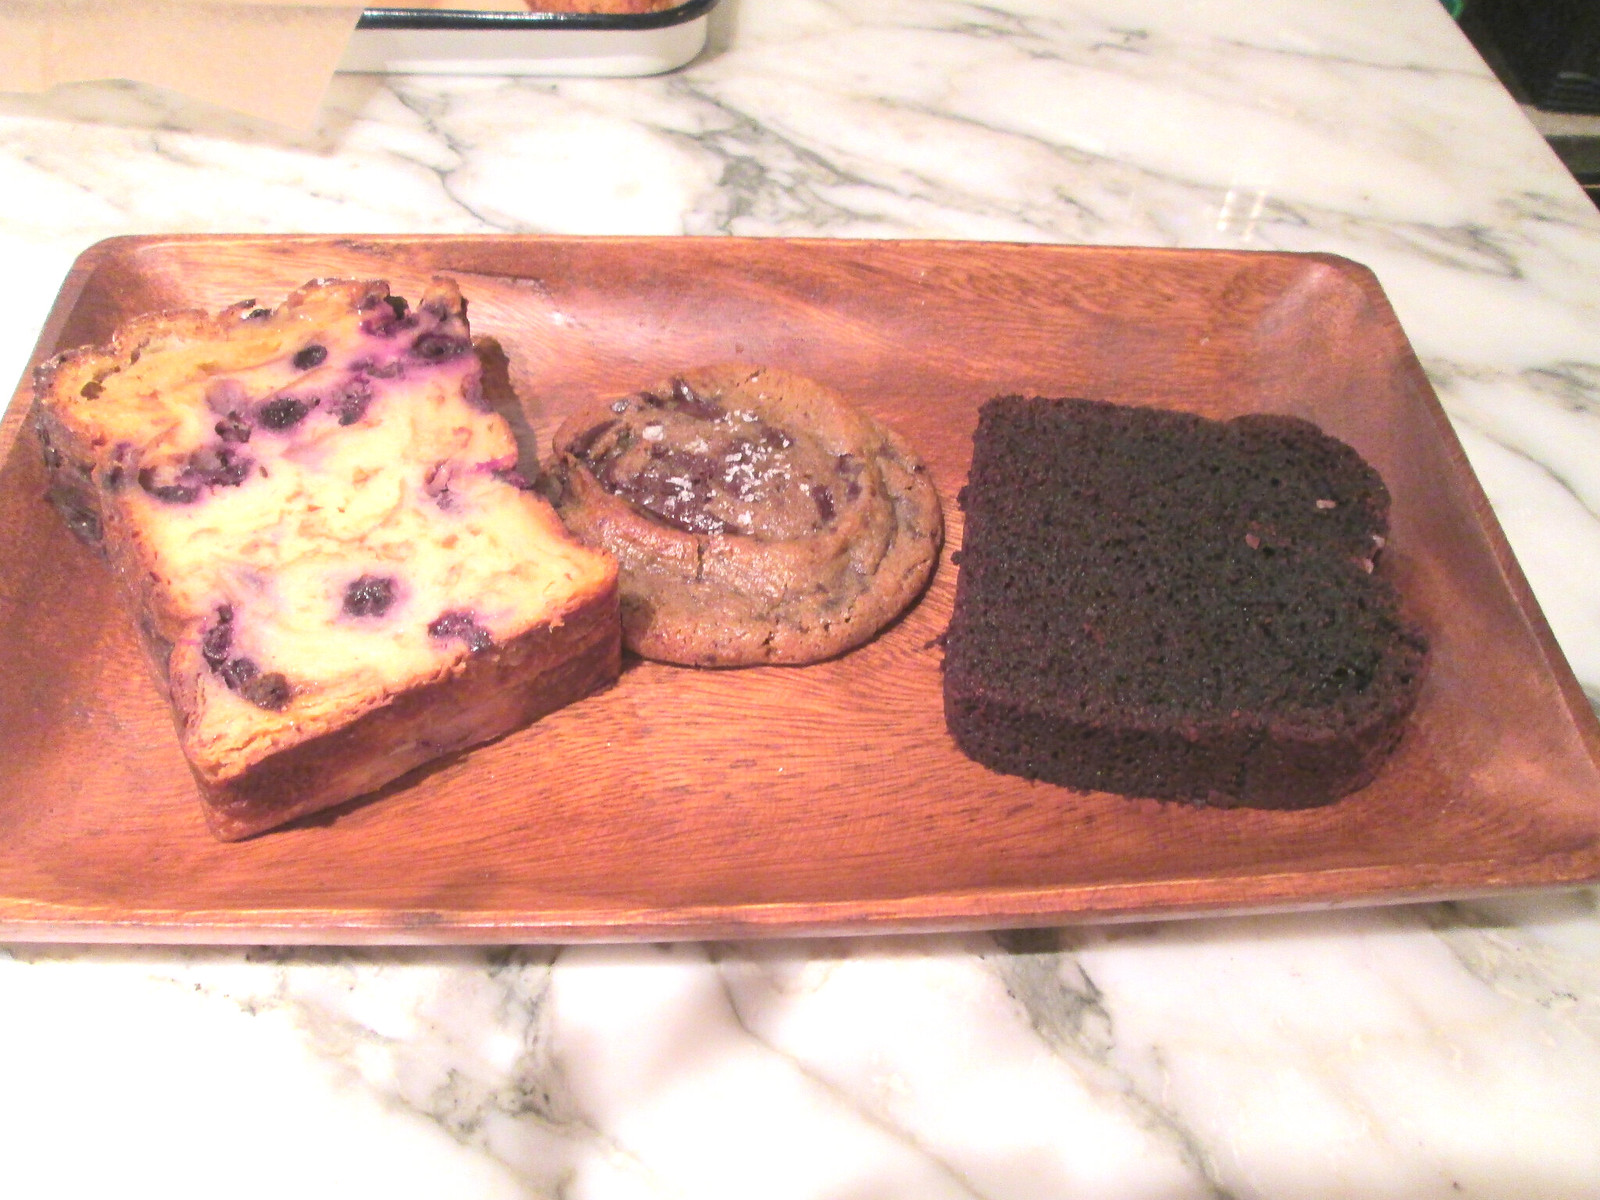 Bread Pudding, Chocolate Chip Cookie with Sea Salt and Olive Oil Cake